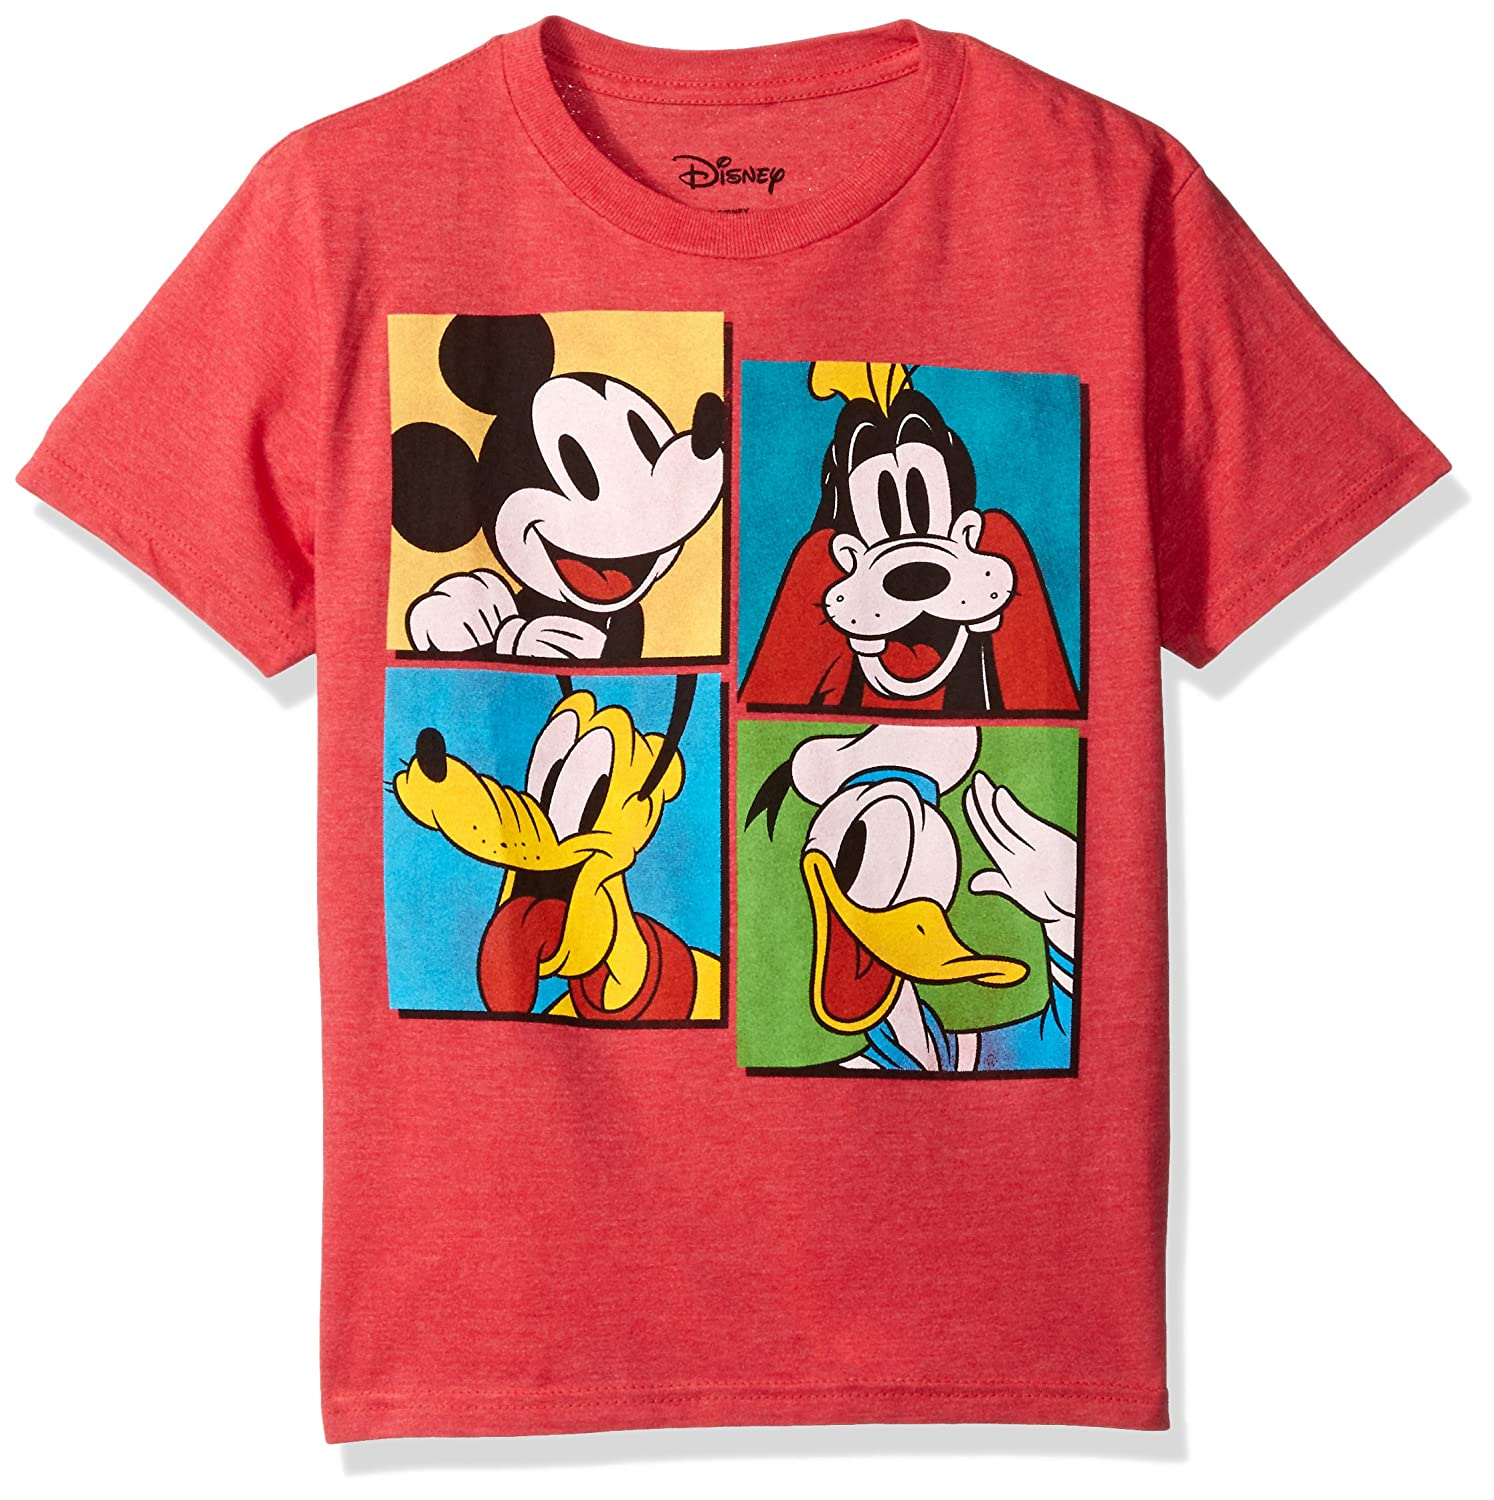 Disney Big Boys' Mickey Mouse, Donald Duck and Goofy T-Shirt DSSC034YSC3P1XX